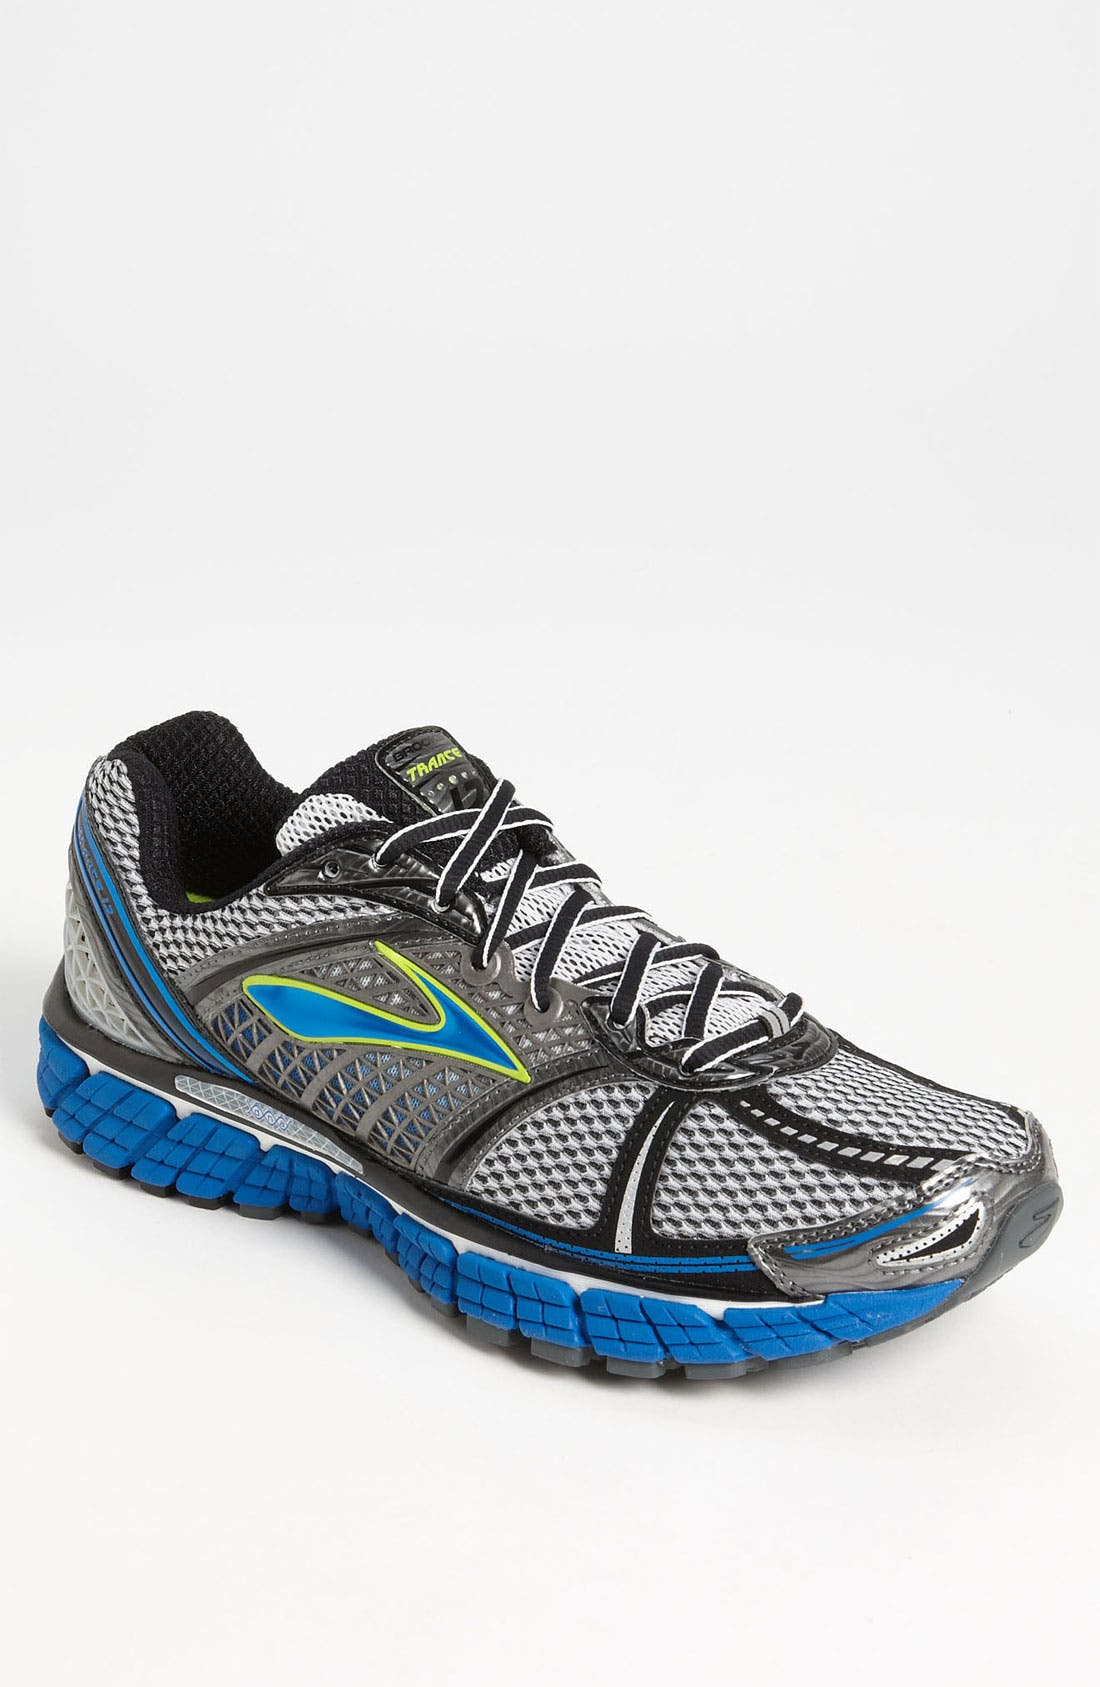 Alternate Image 1 Selected - Brooks 'Trance 12' Running Shoe (Men)